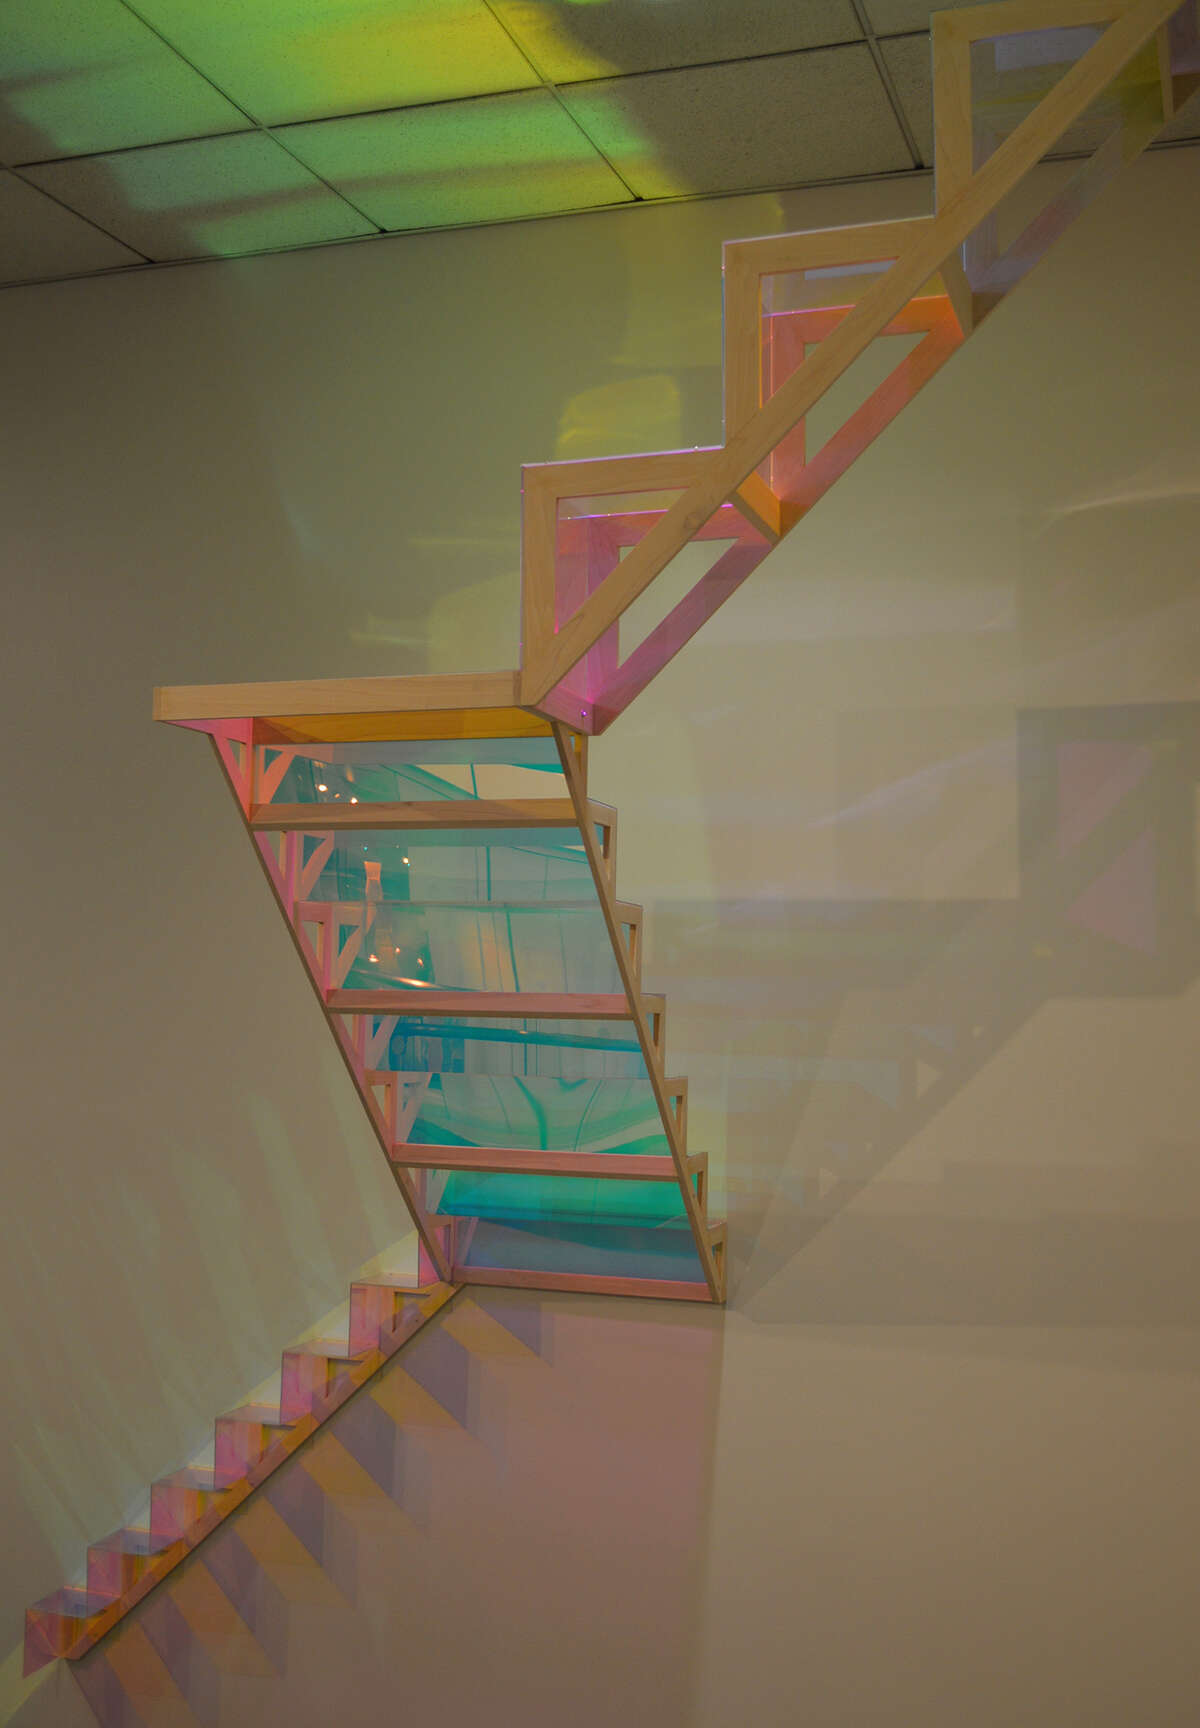 Palermo, Up and Down, wood, cast acrylic, dichroic film, 2015 (this is a site-specific installation that will remain in place for 2-3 years)